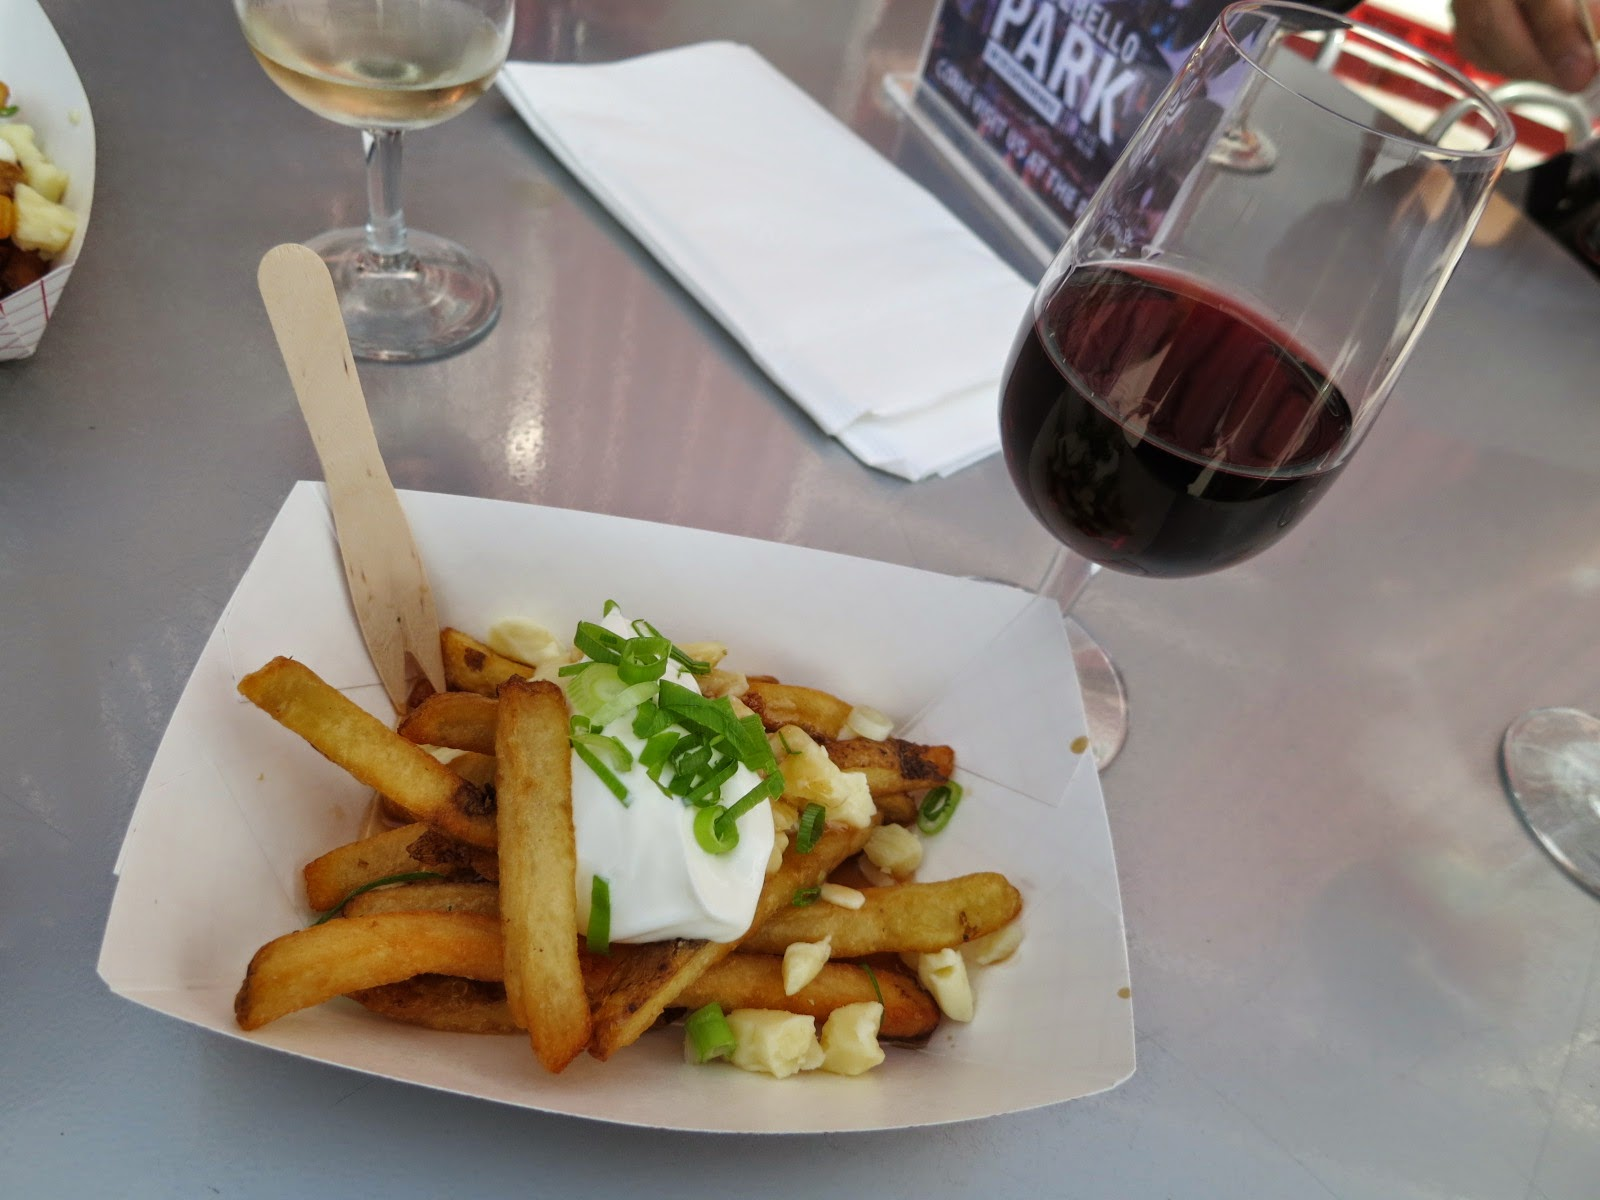 Chef Collin Goodine's baked potato poutine with 2010 Pillitteri Cabernet Franc